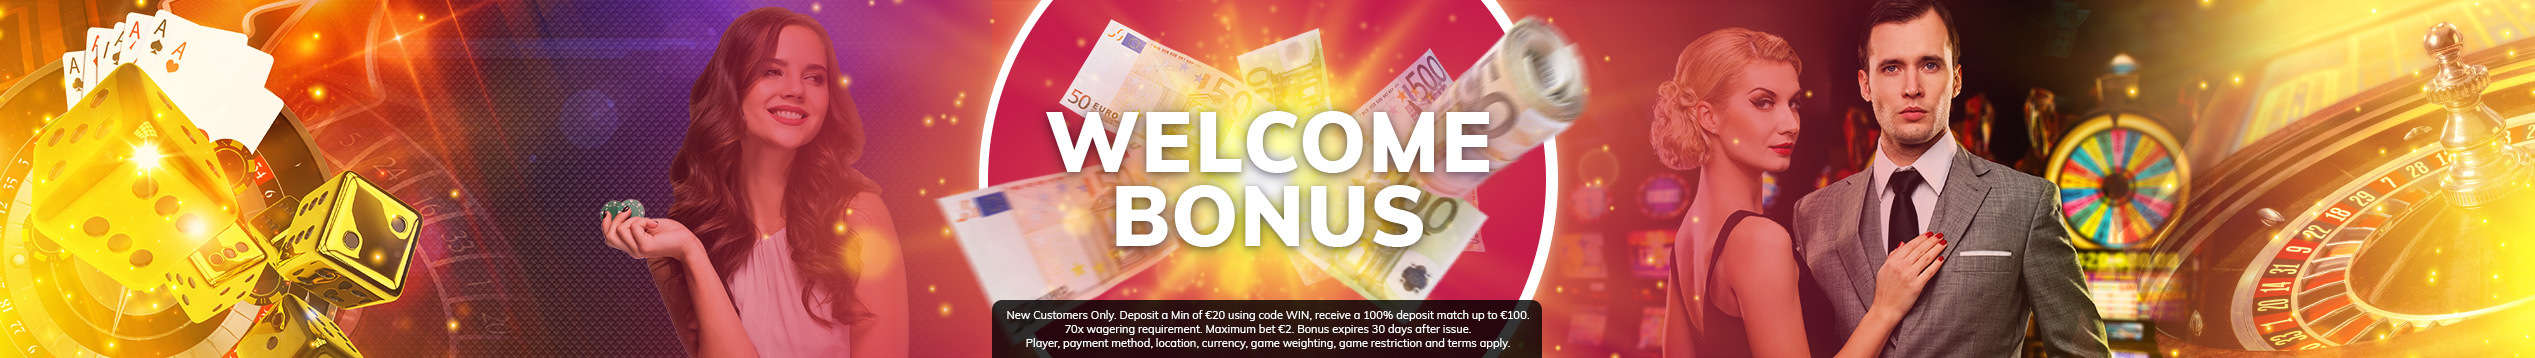 Get up to €100 in Casino Bonus on your first deposit